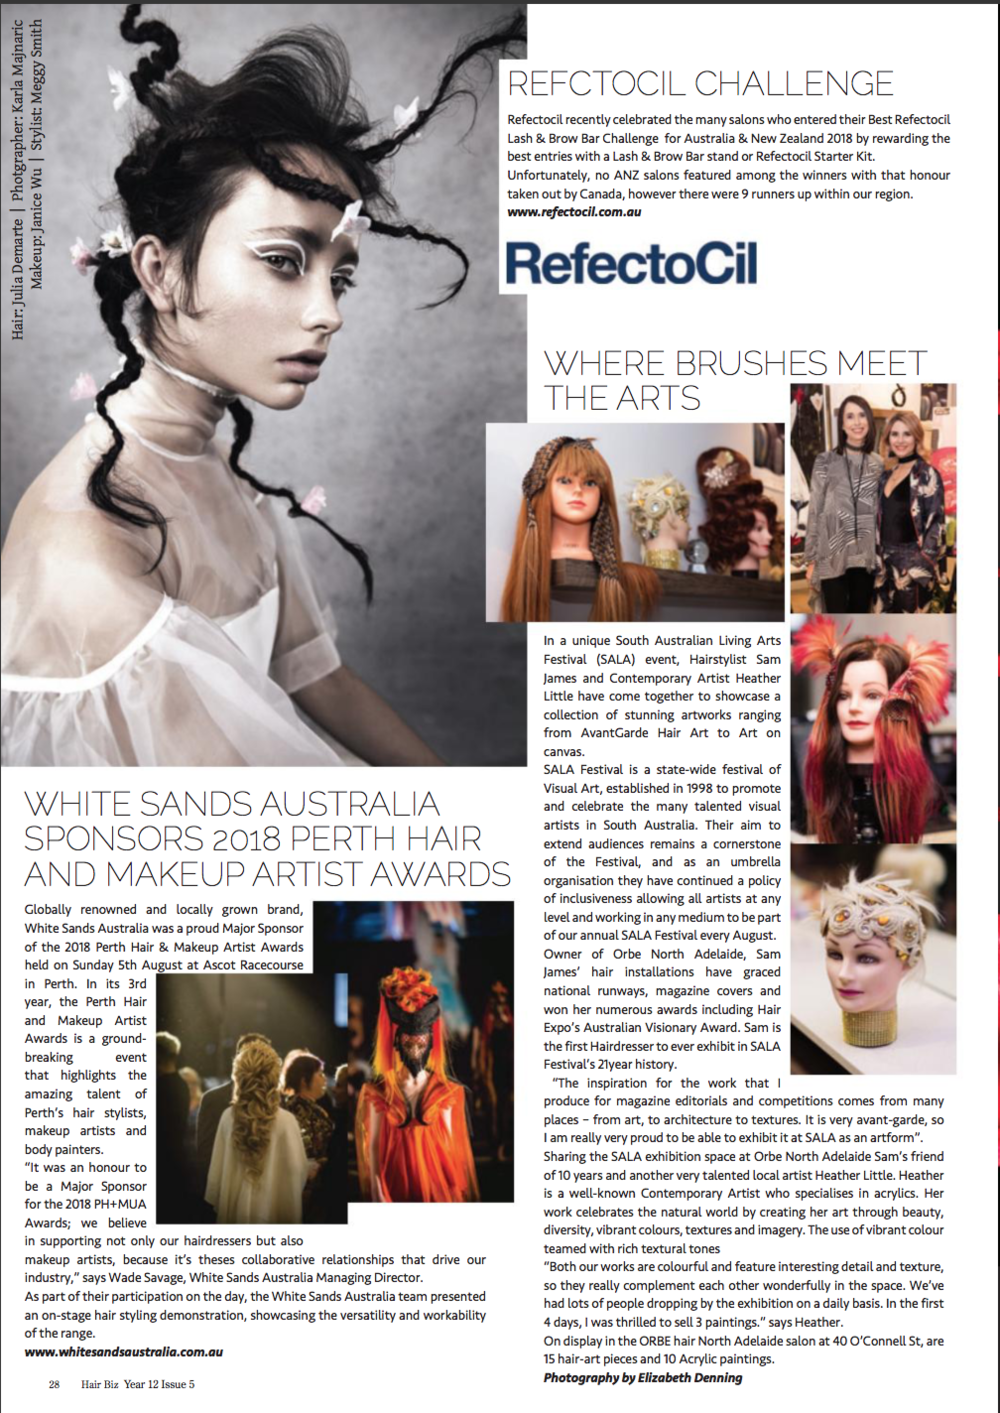 Hair Biz - Yr 12 Issue 5 - September 2018 - WSA PH+MUA awards.png